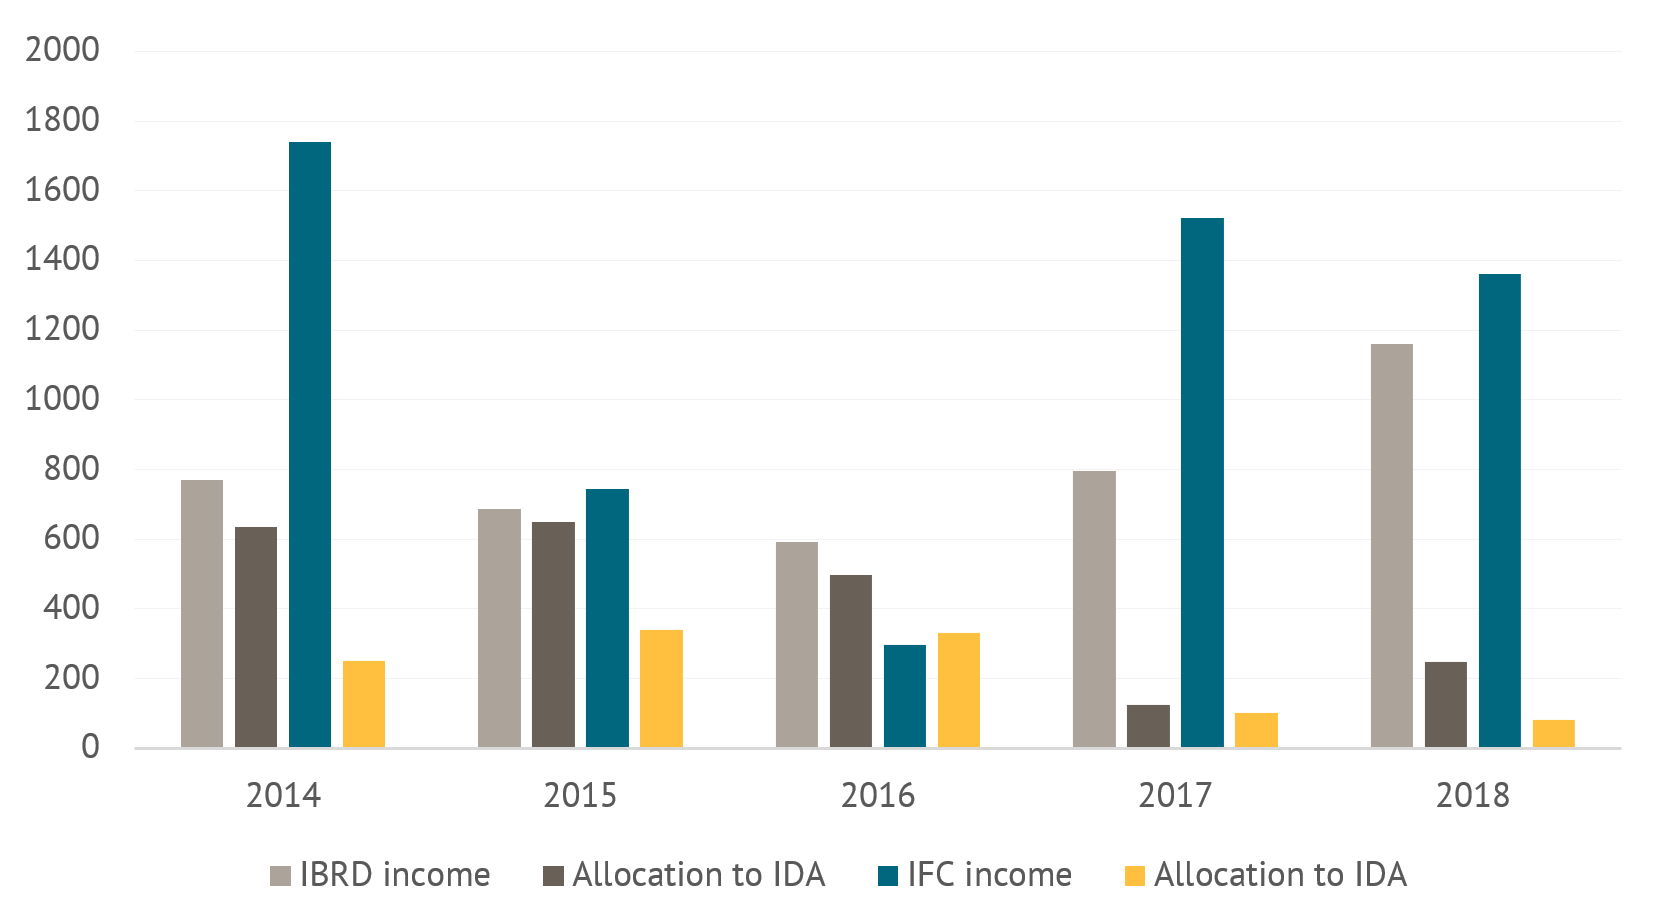 Column chart showing allocations to IDA from IFC and IBRD from 2014 to 2018